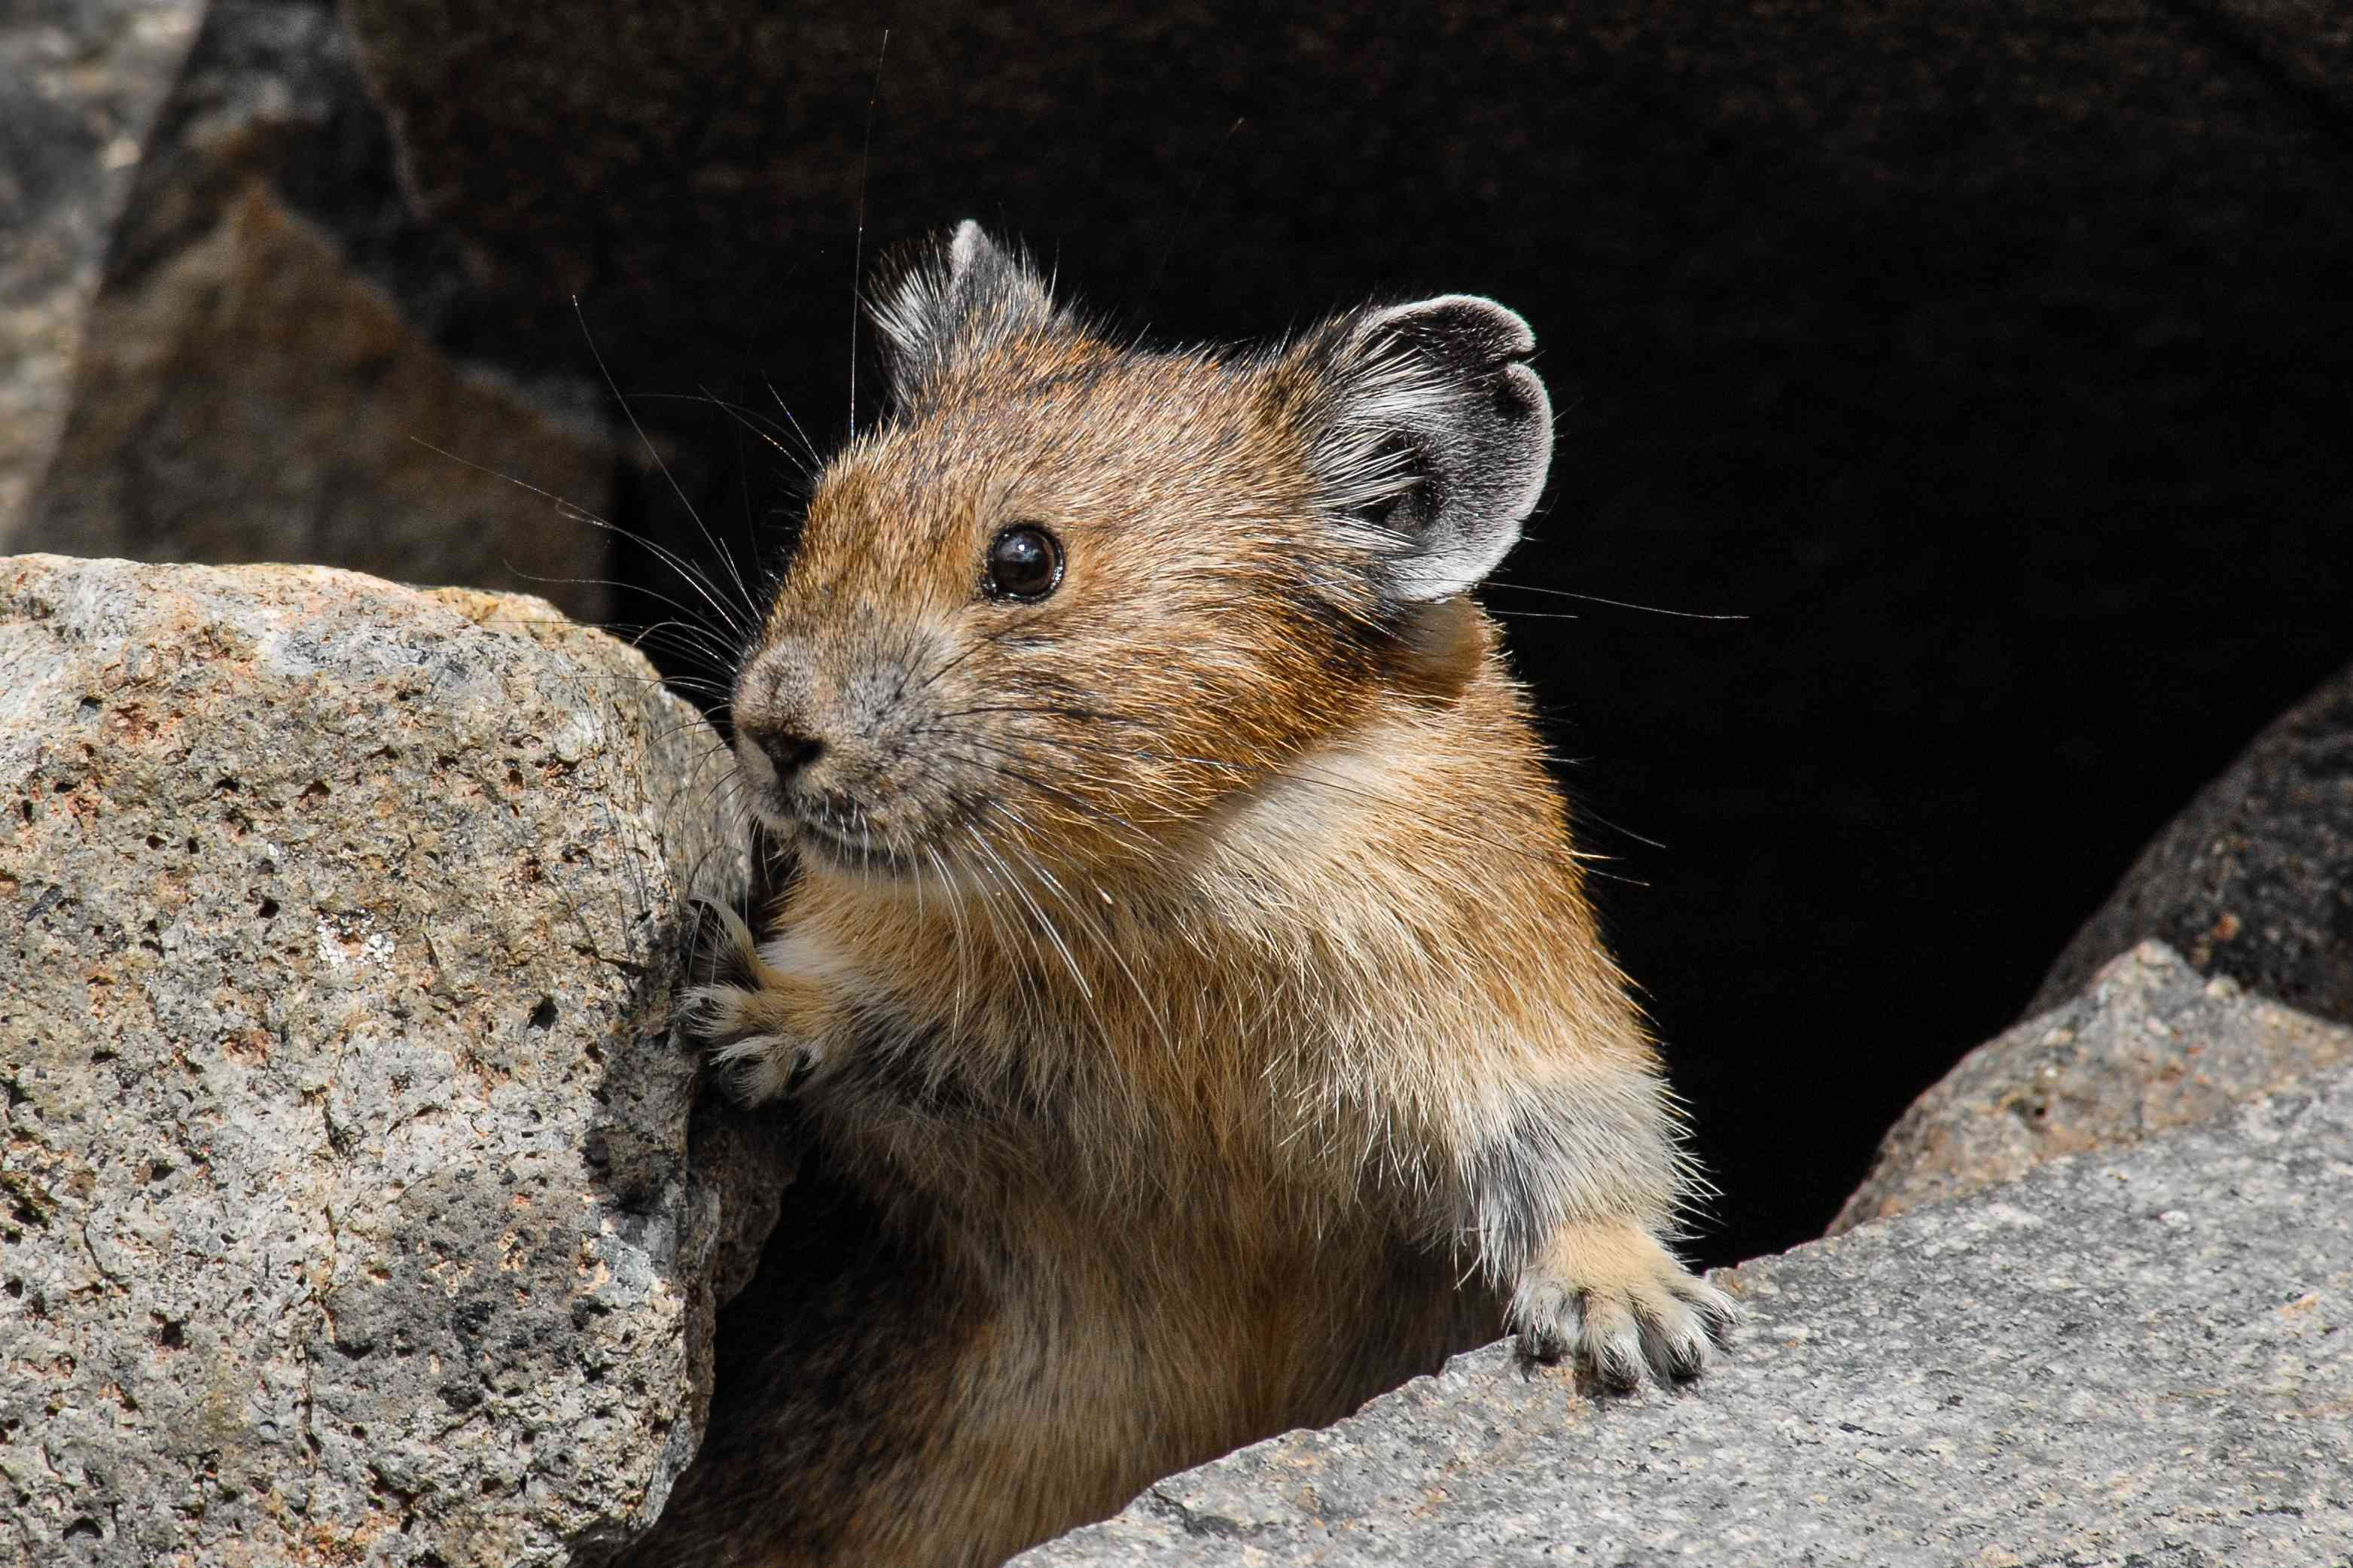 Pika Looking out from its Burrow